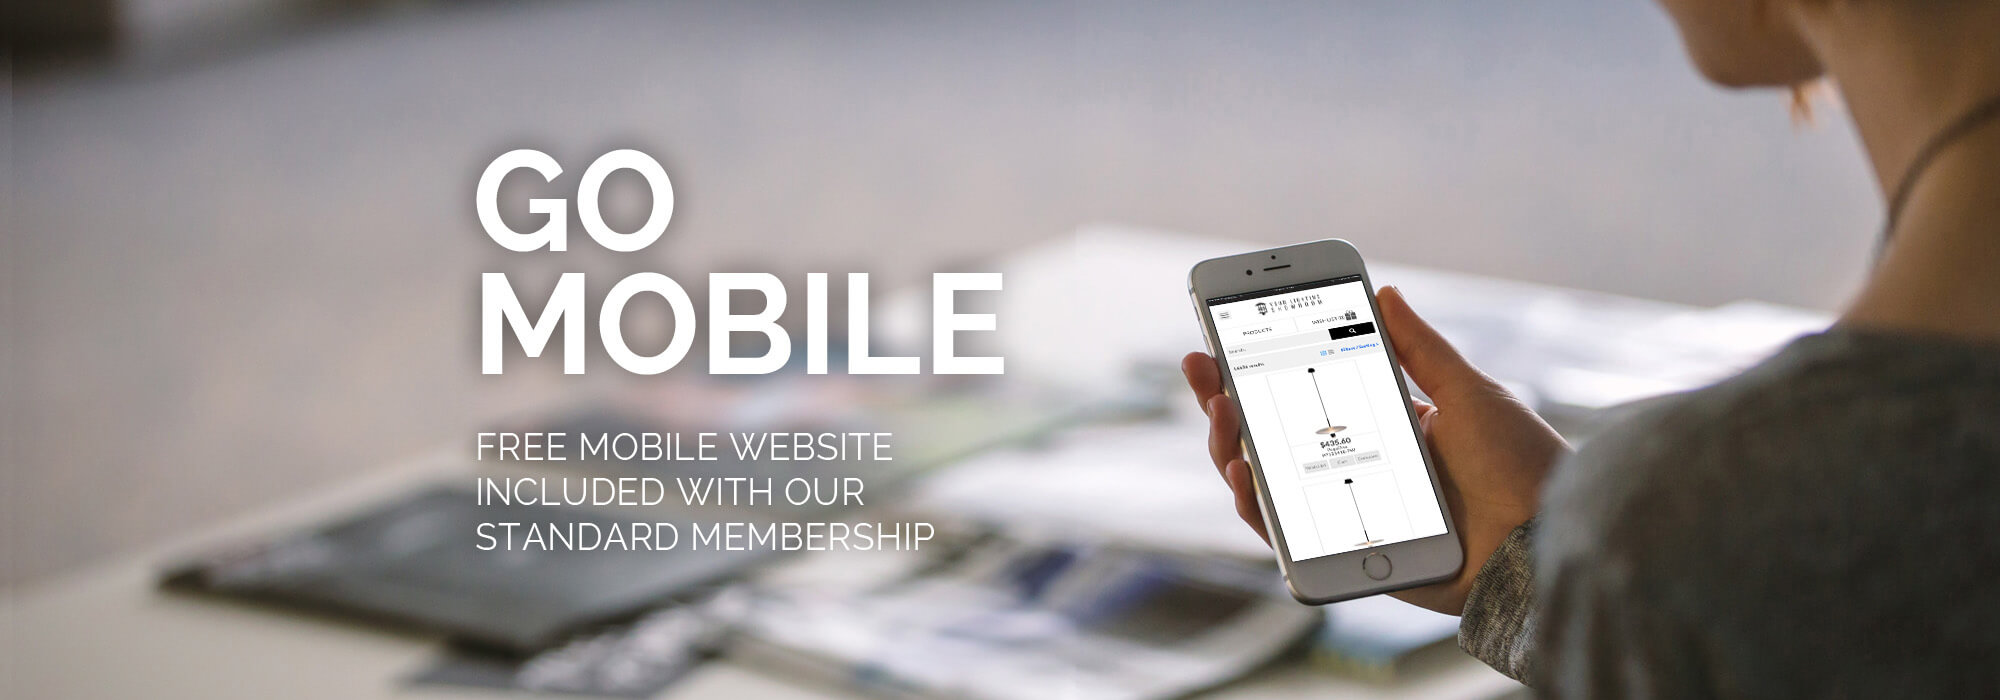 Free Mobile Website